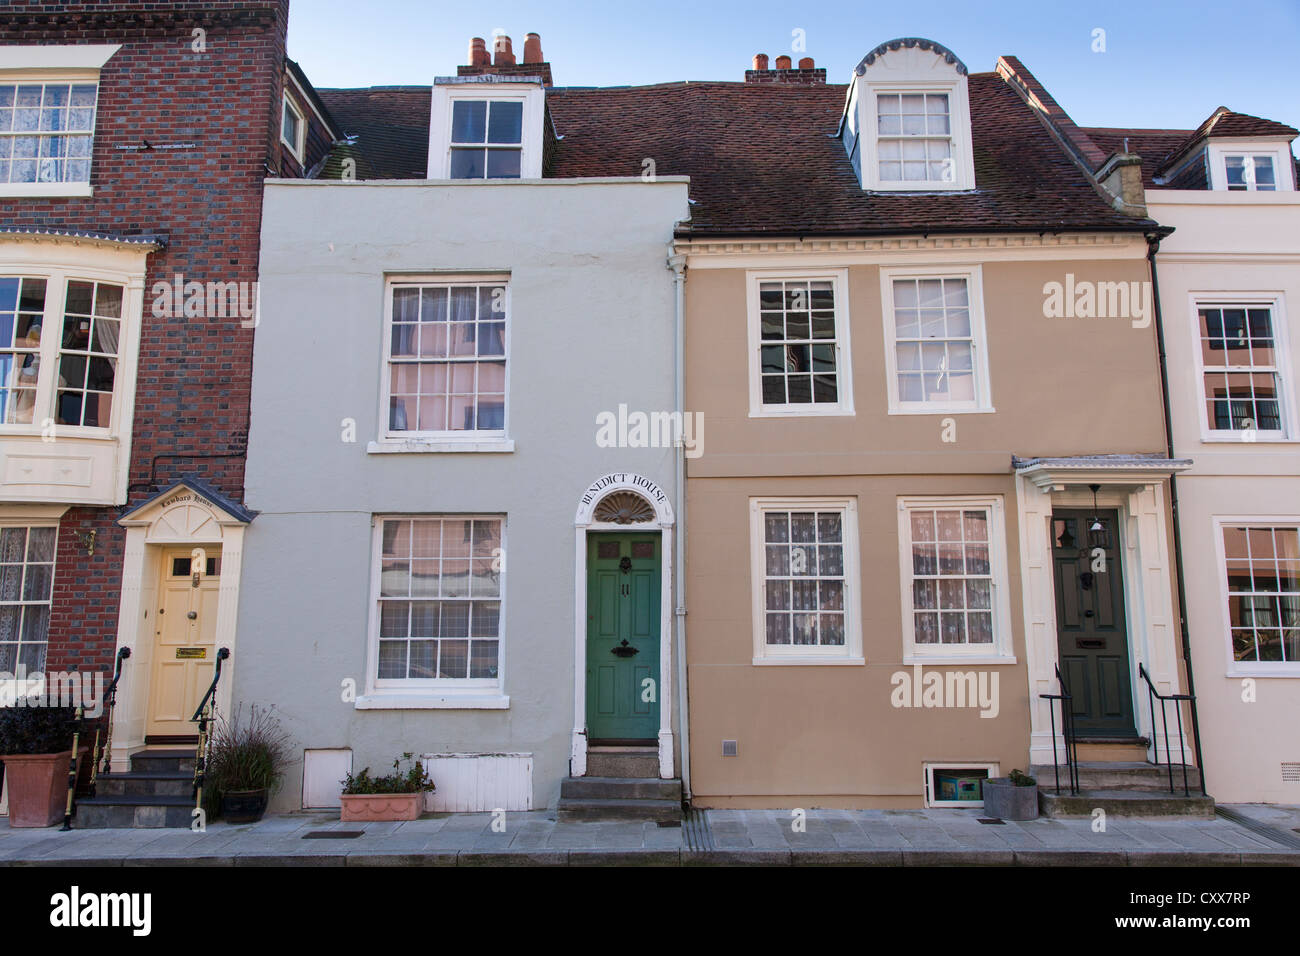 18th century houses in Lombard Street, Old Portsmouth, England